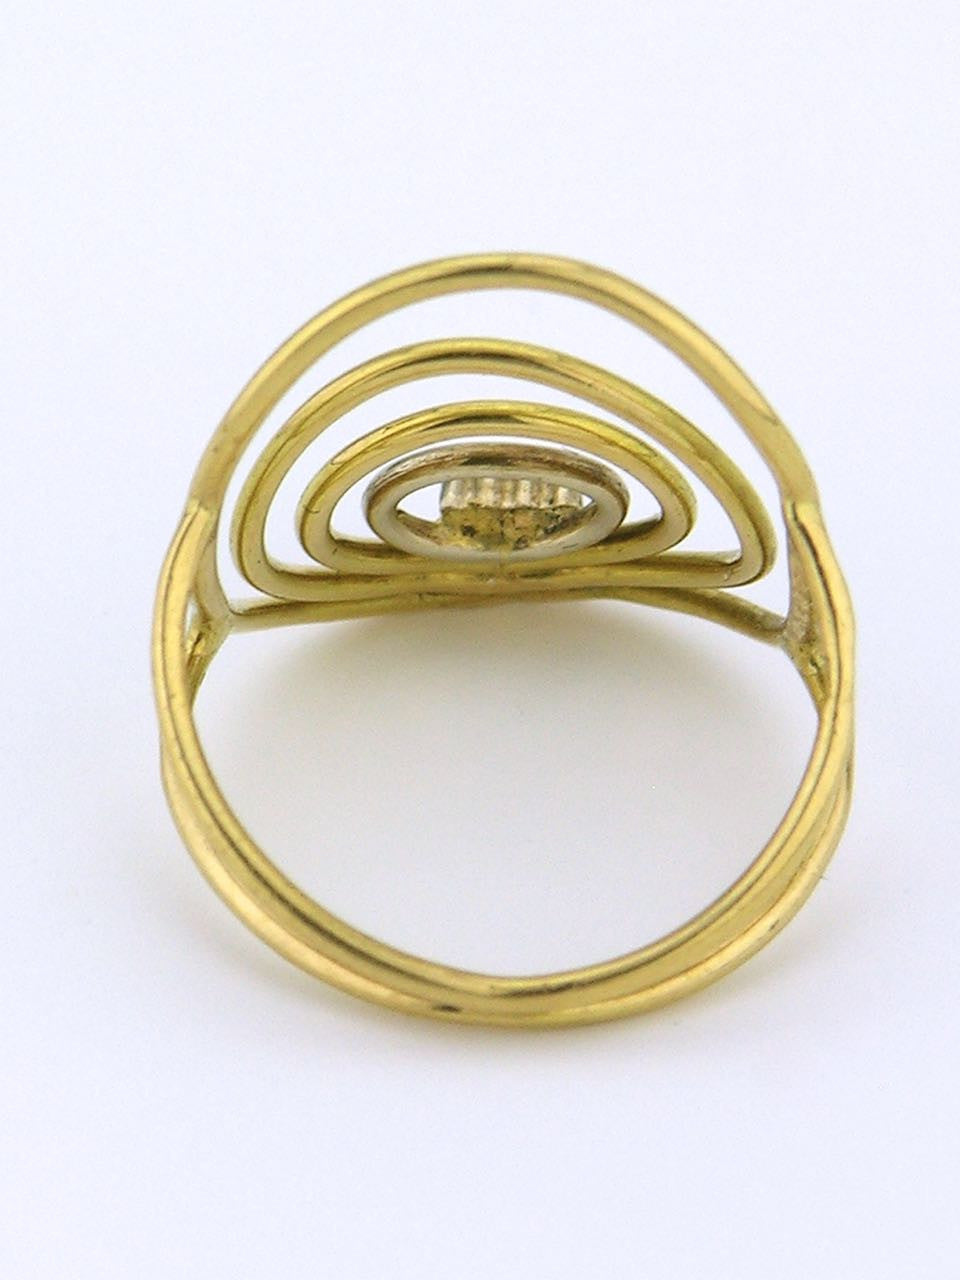 Italian modernist 18k yellow and white gold wire ring